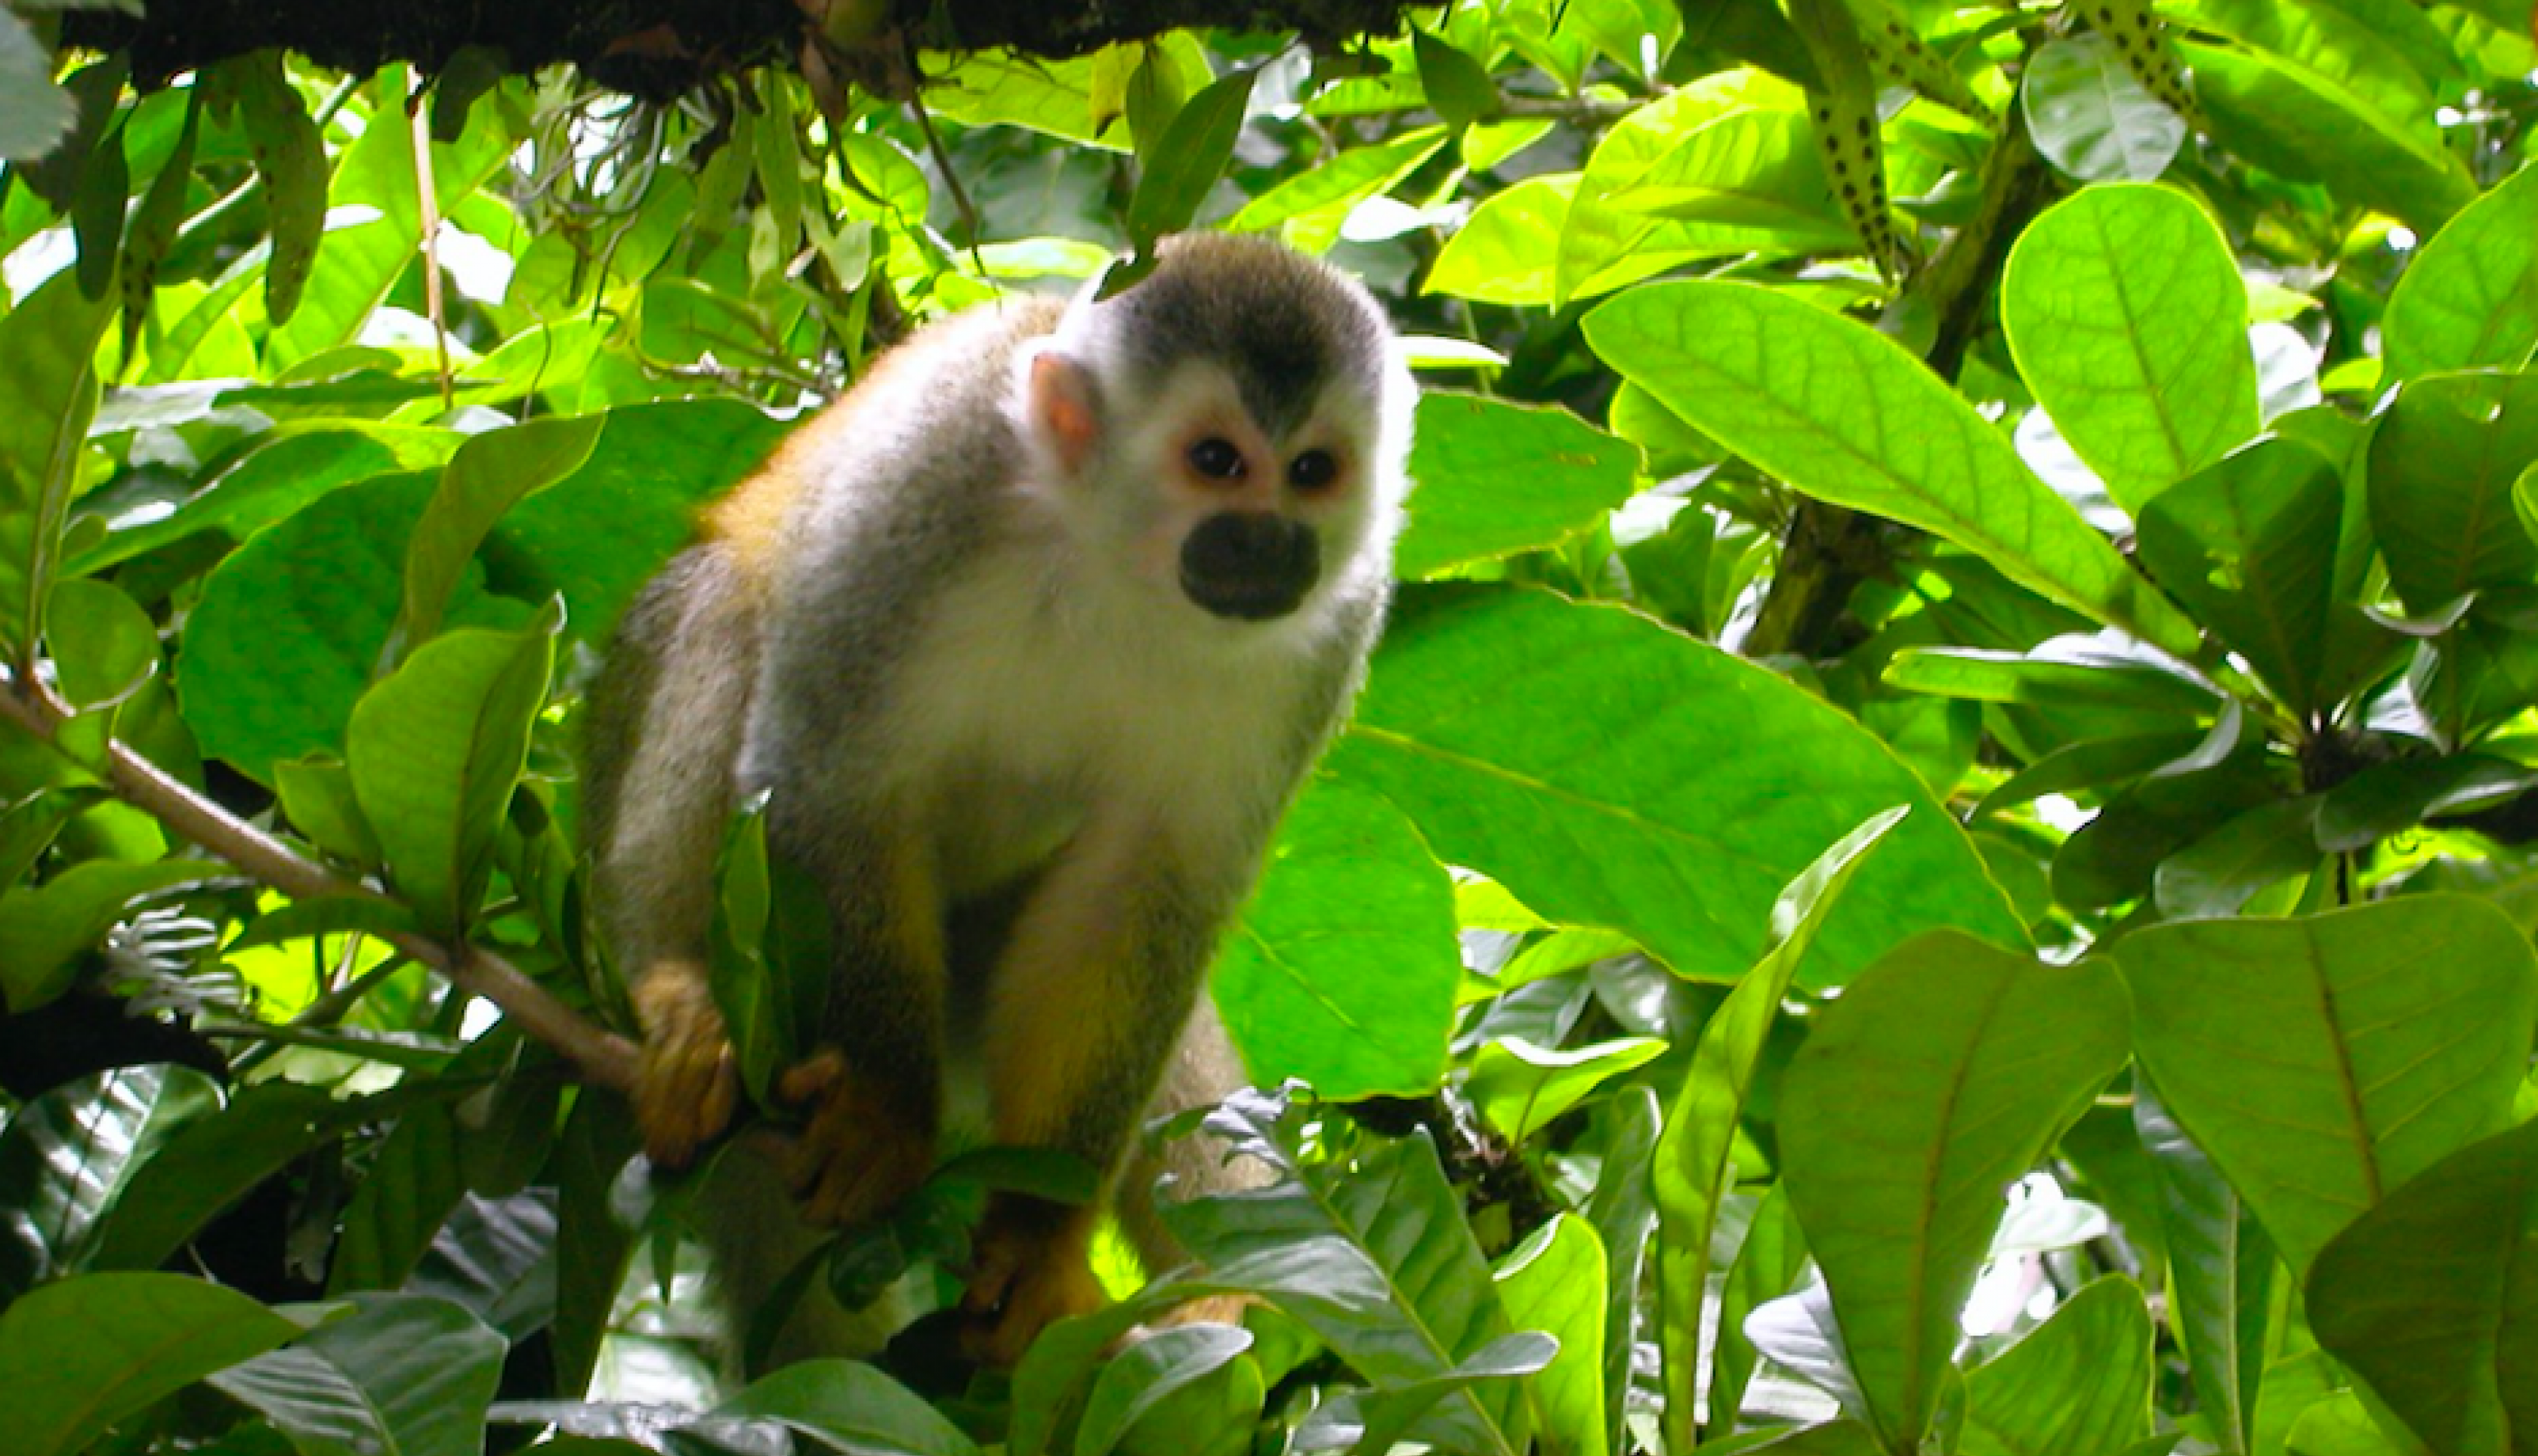 Photo of a Central American Squirrel Monkey in Costa Rica in 2008